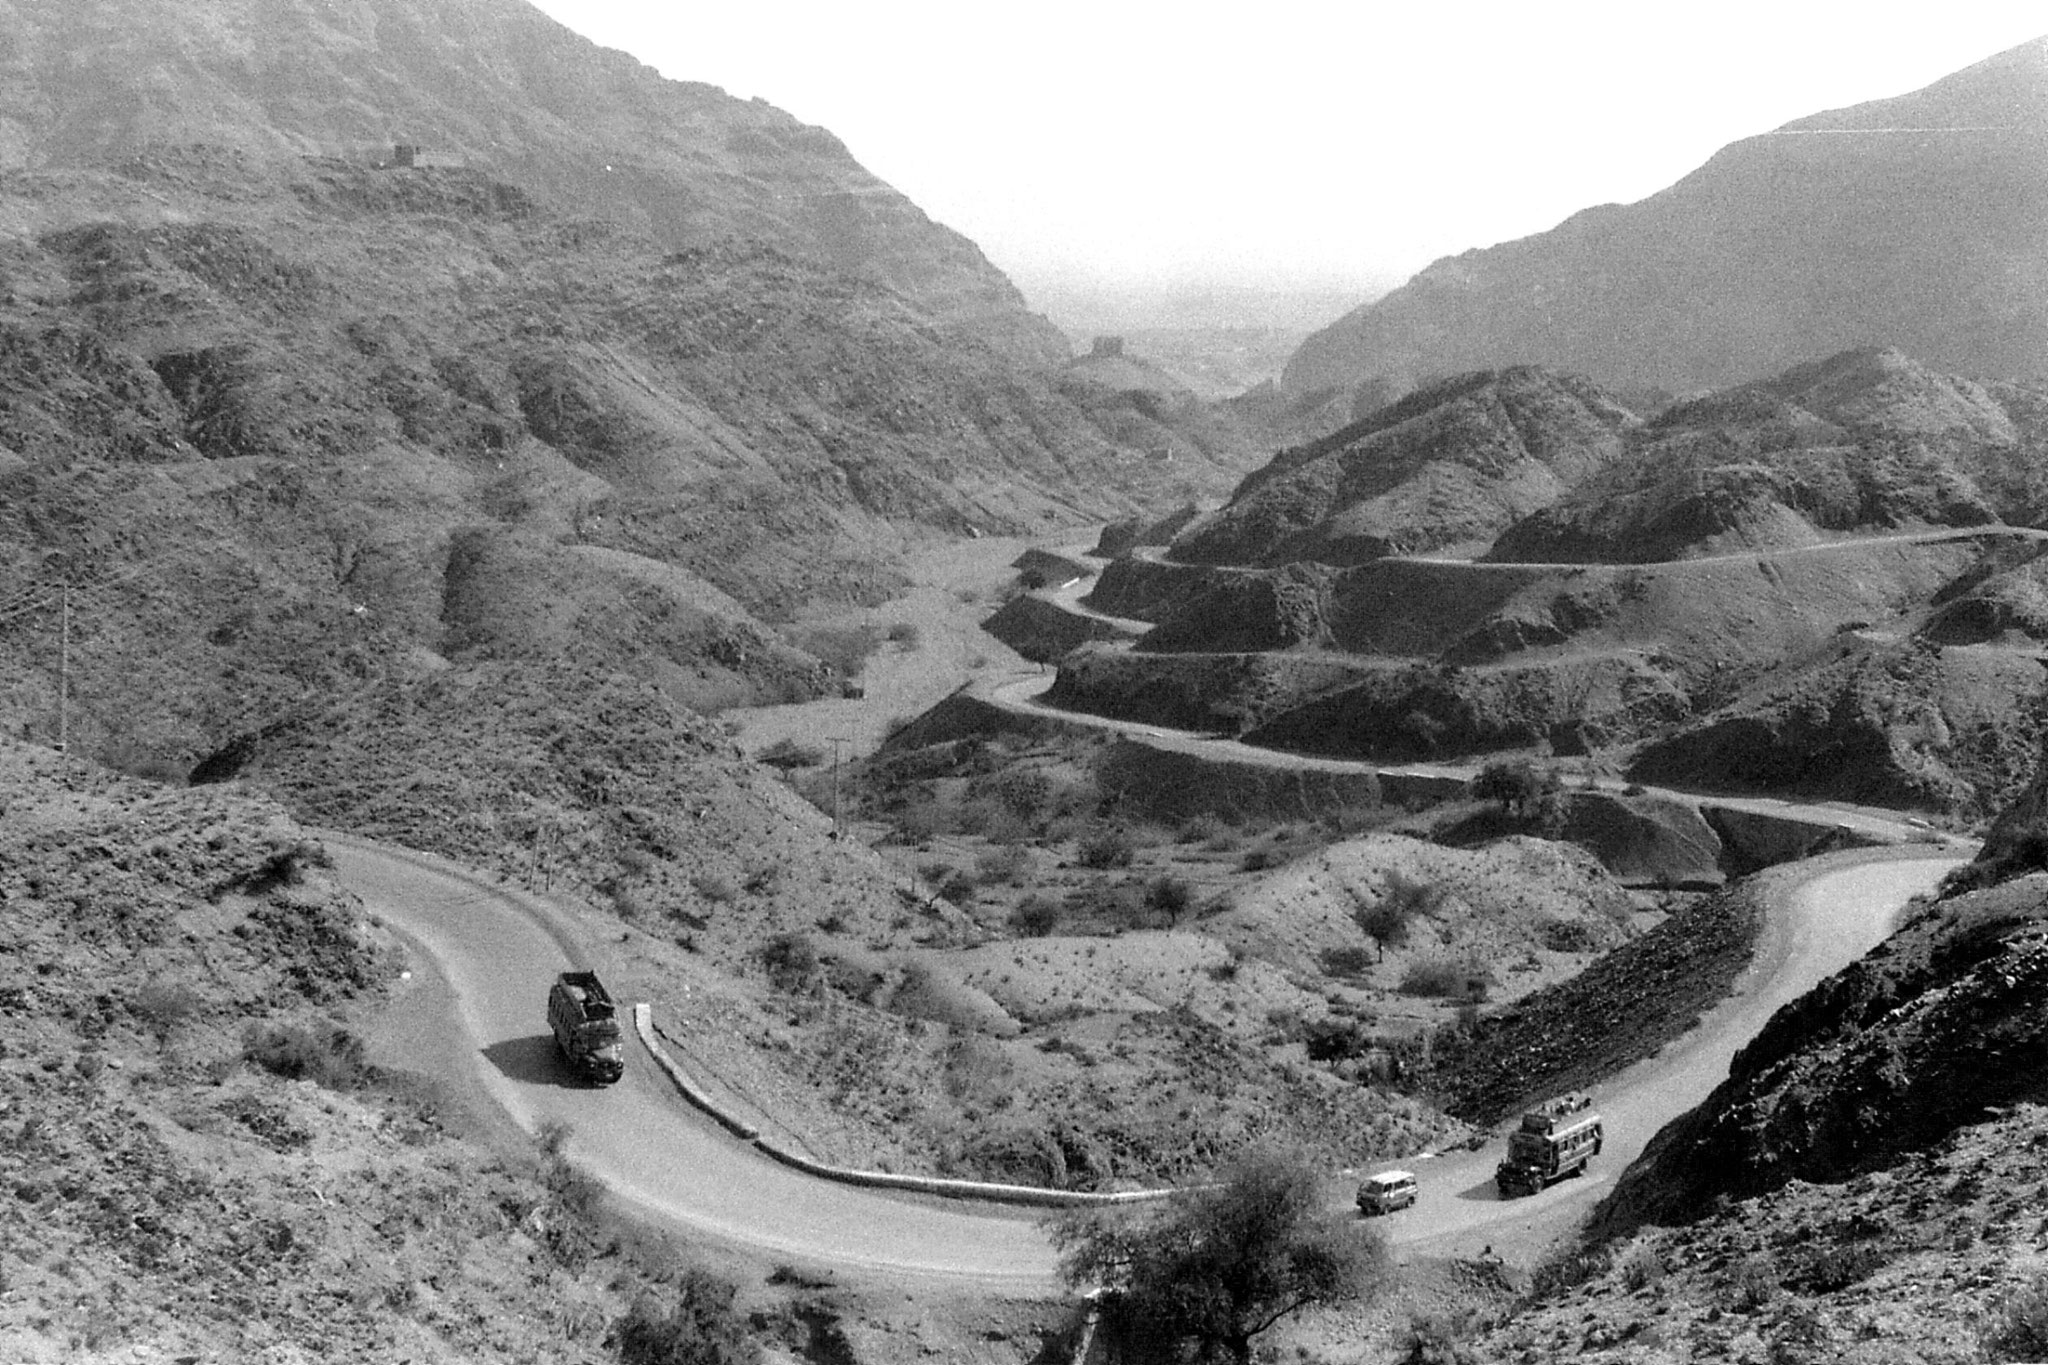 6/11/1989: 23: Kyyber Pass looking towards Peshawar